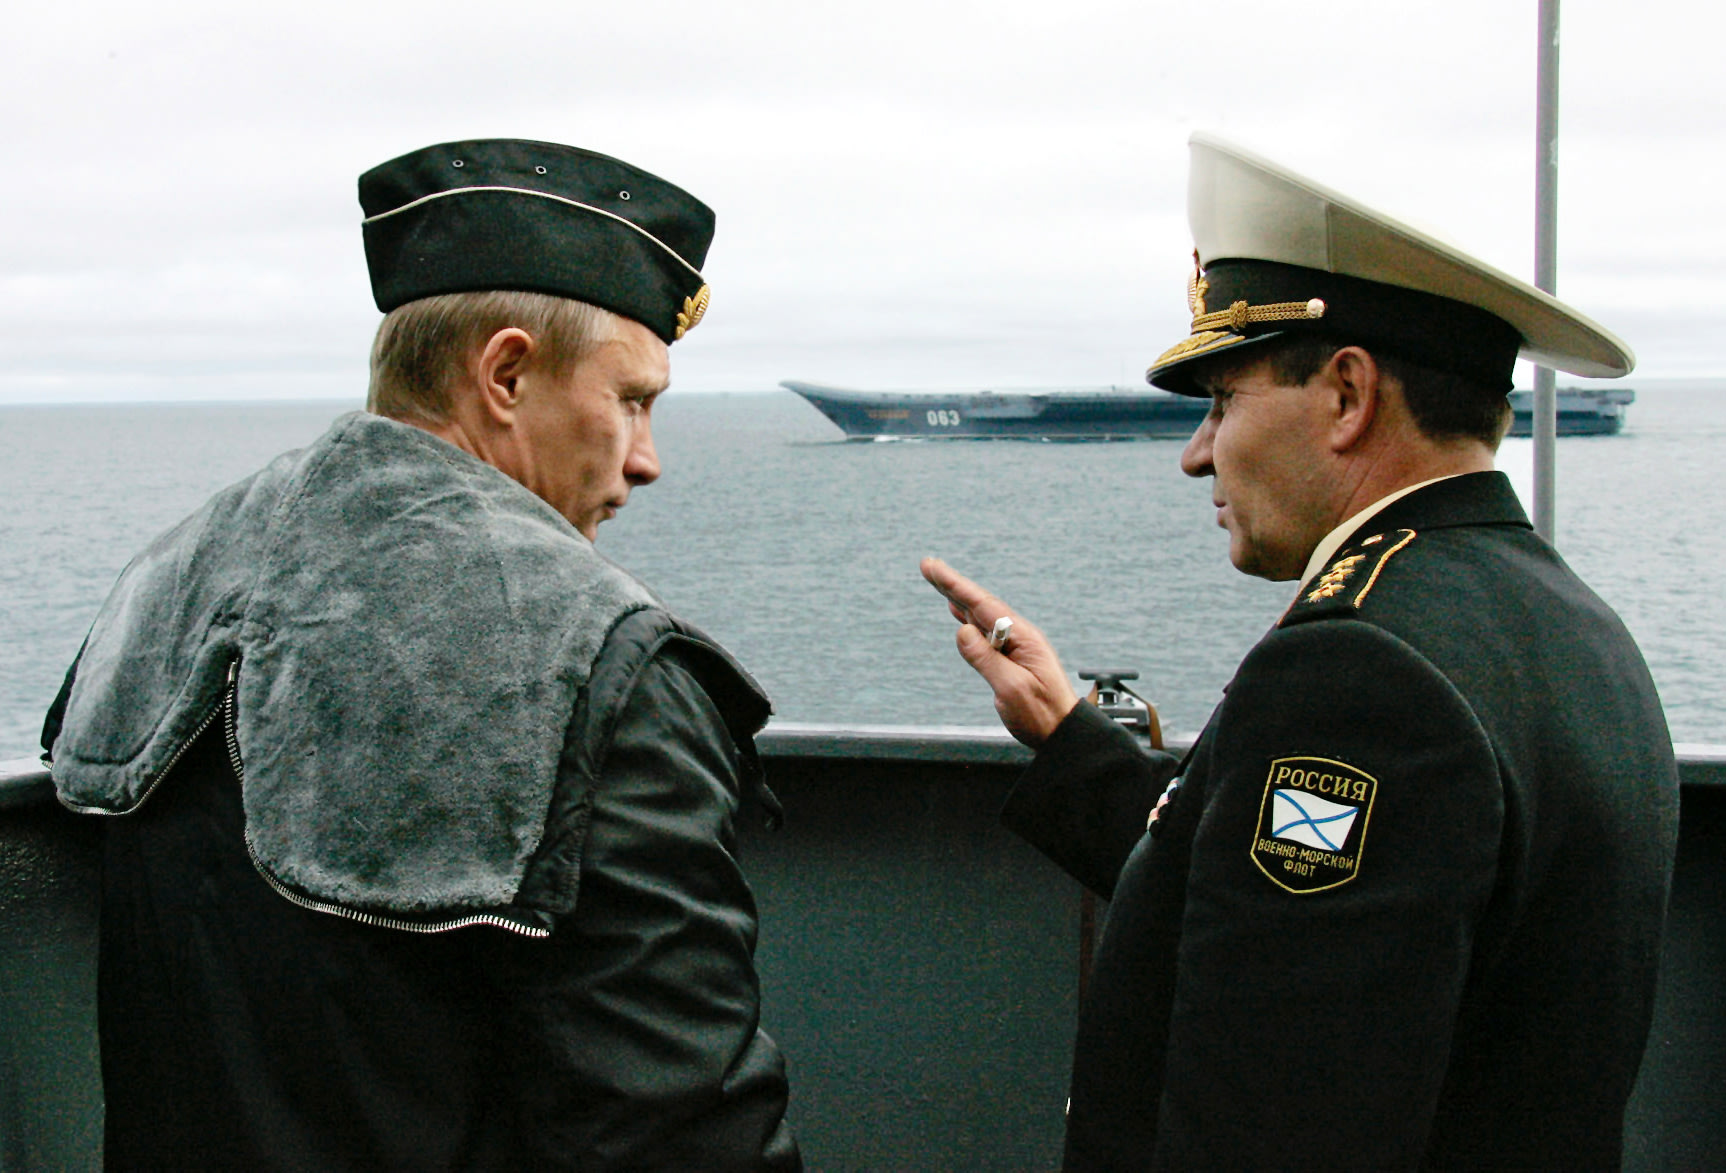 US Coast Guard chief: We are 'not even in the same league as Russia' in the Arctic